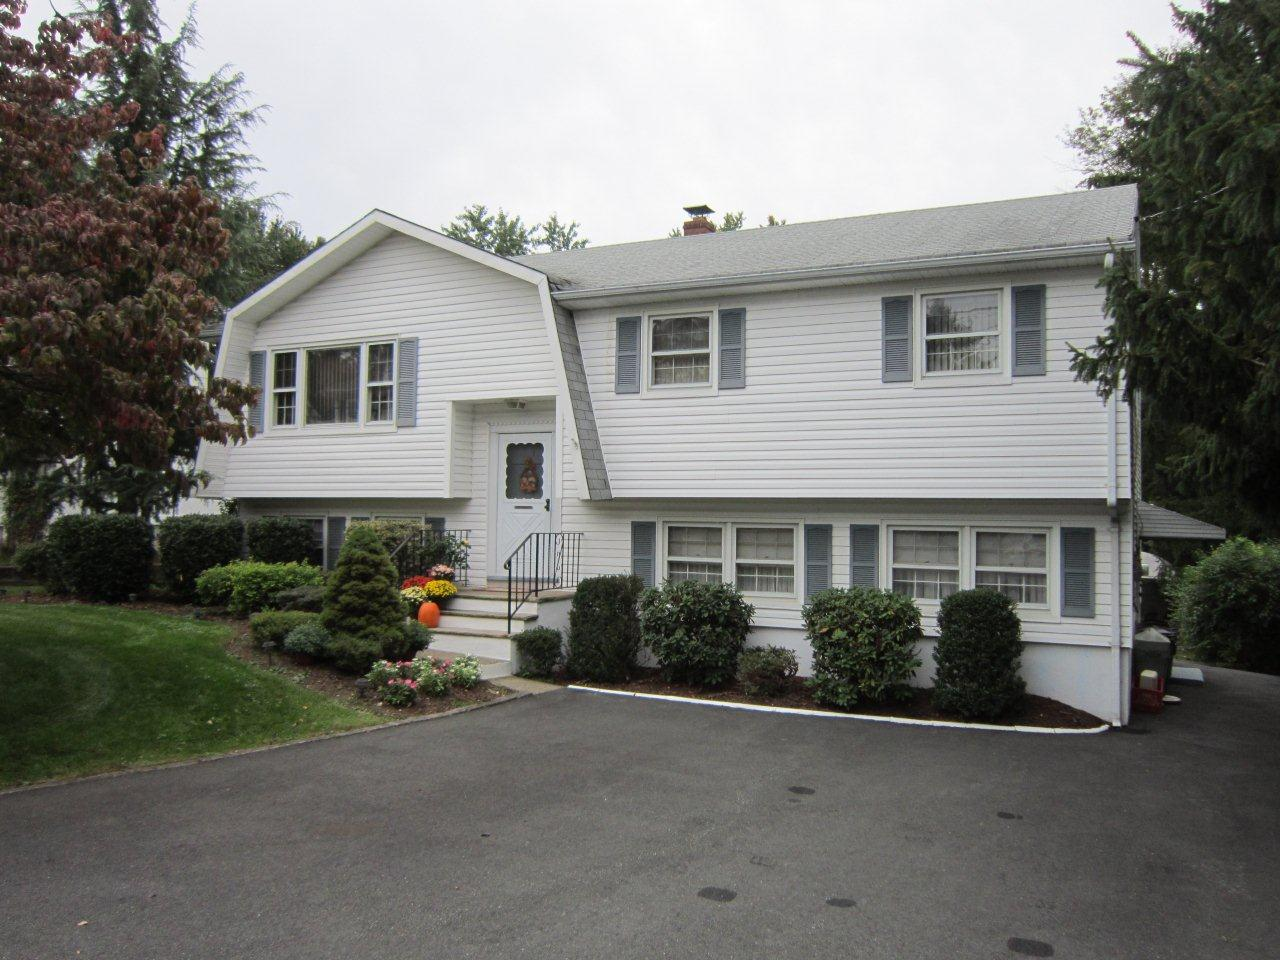 JUST LISTED IN MONTVILLE, NJ – BI-LEVEL WITH IN-LAW SUITE! | New